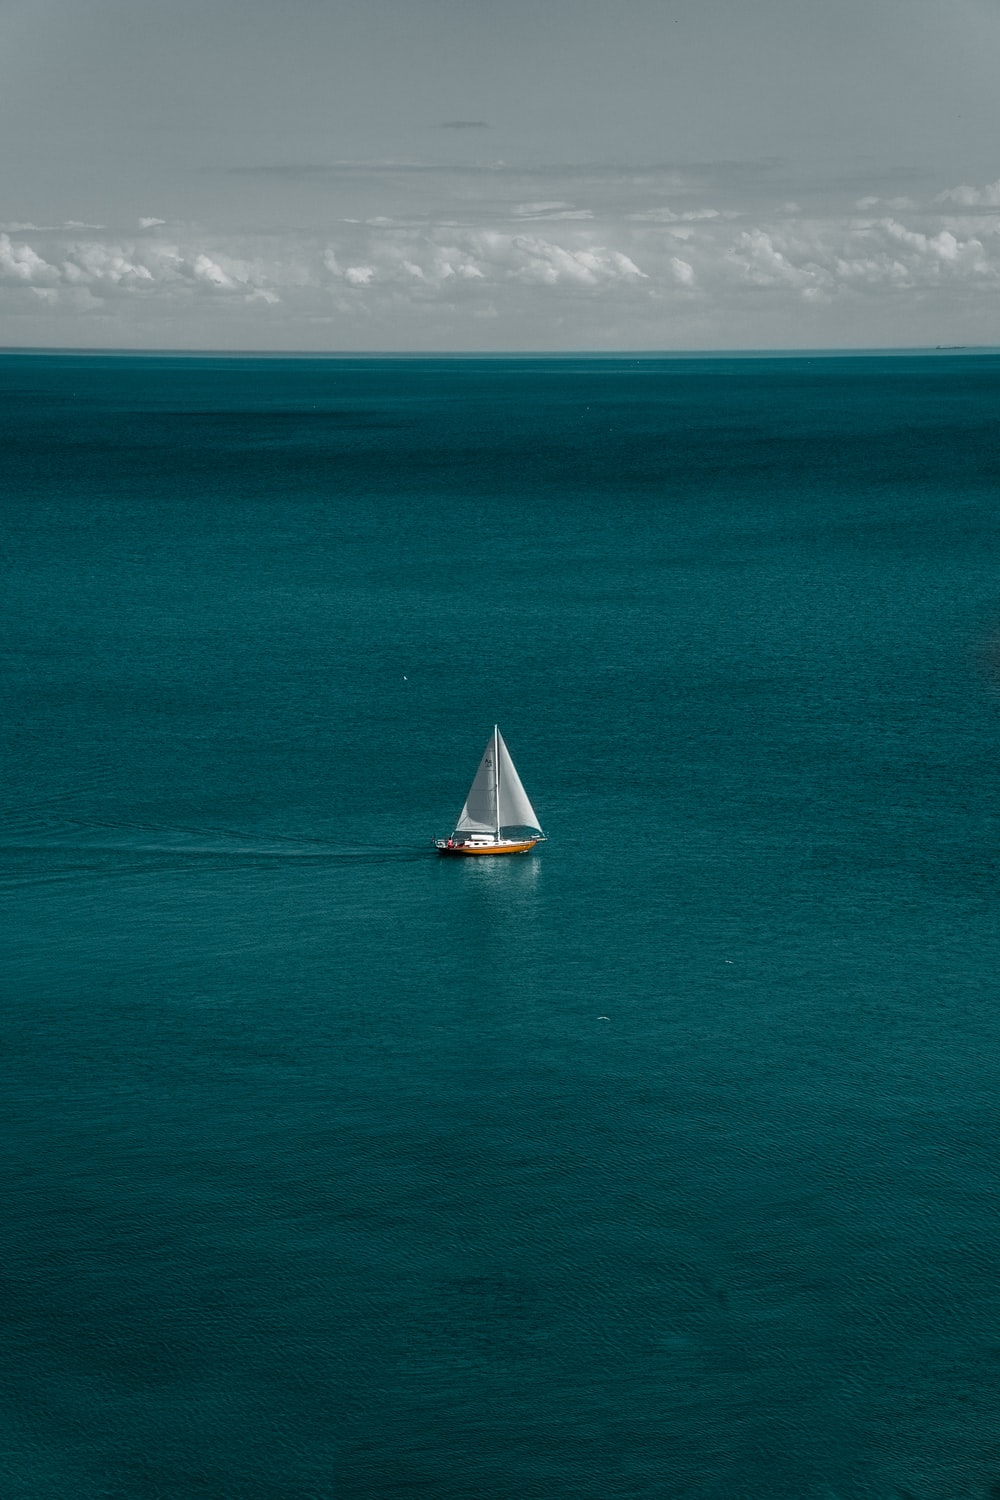 white and brown boat in body of water